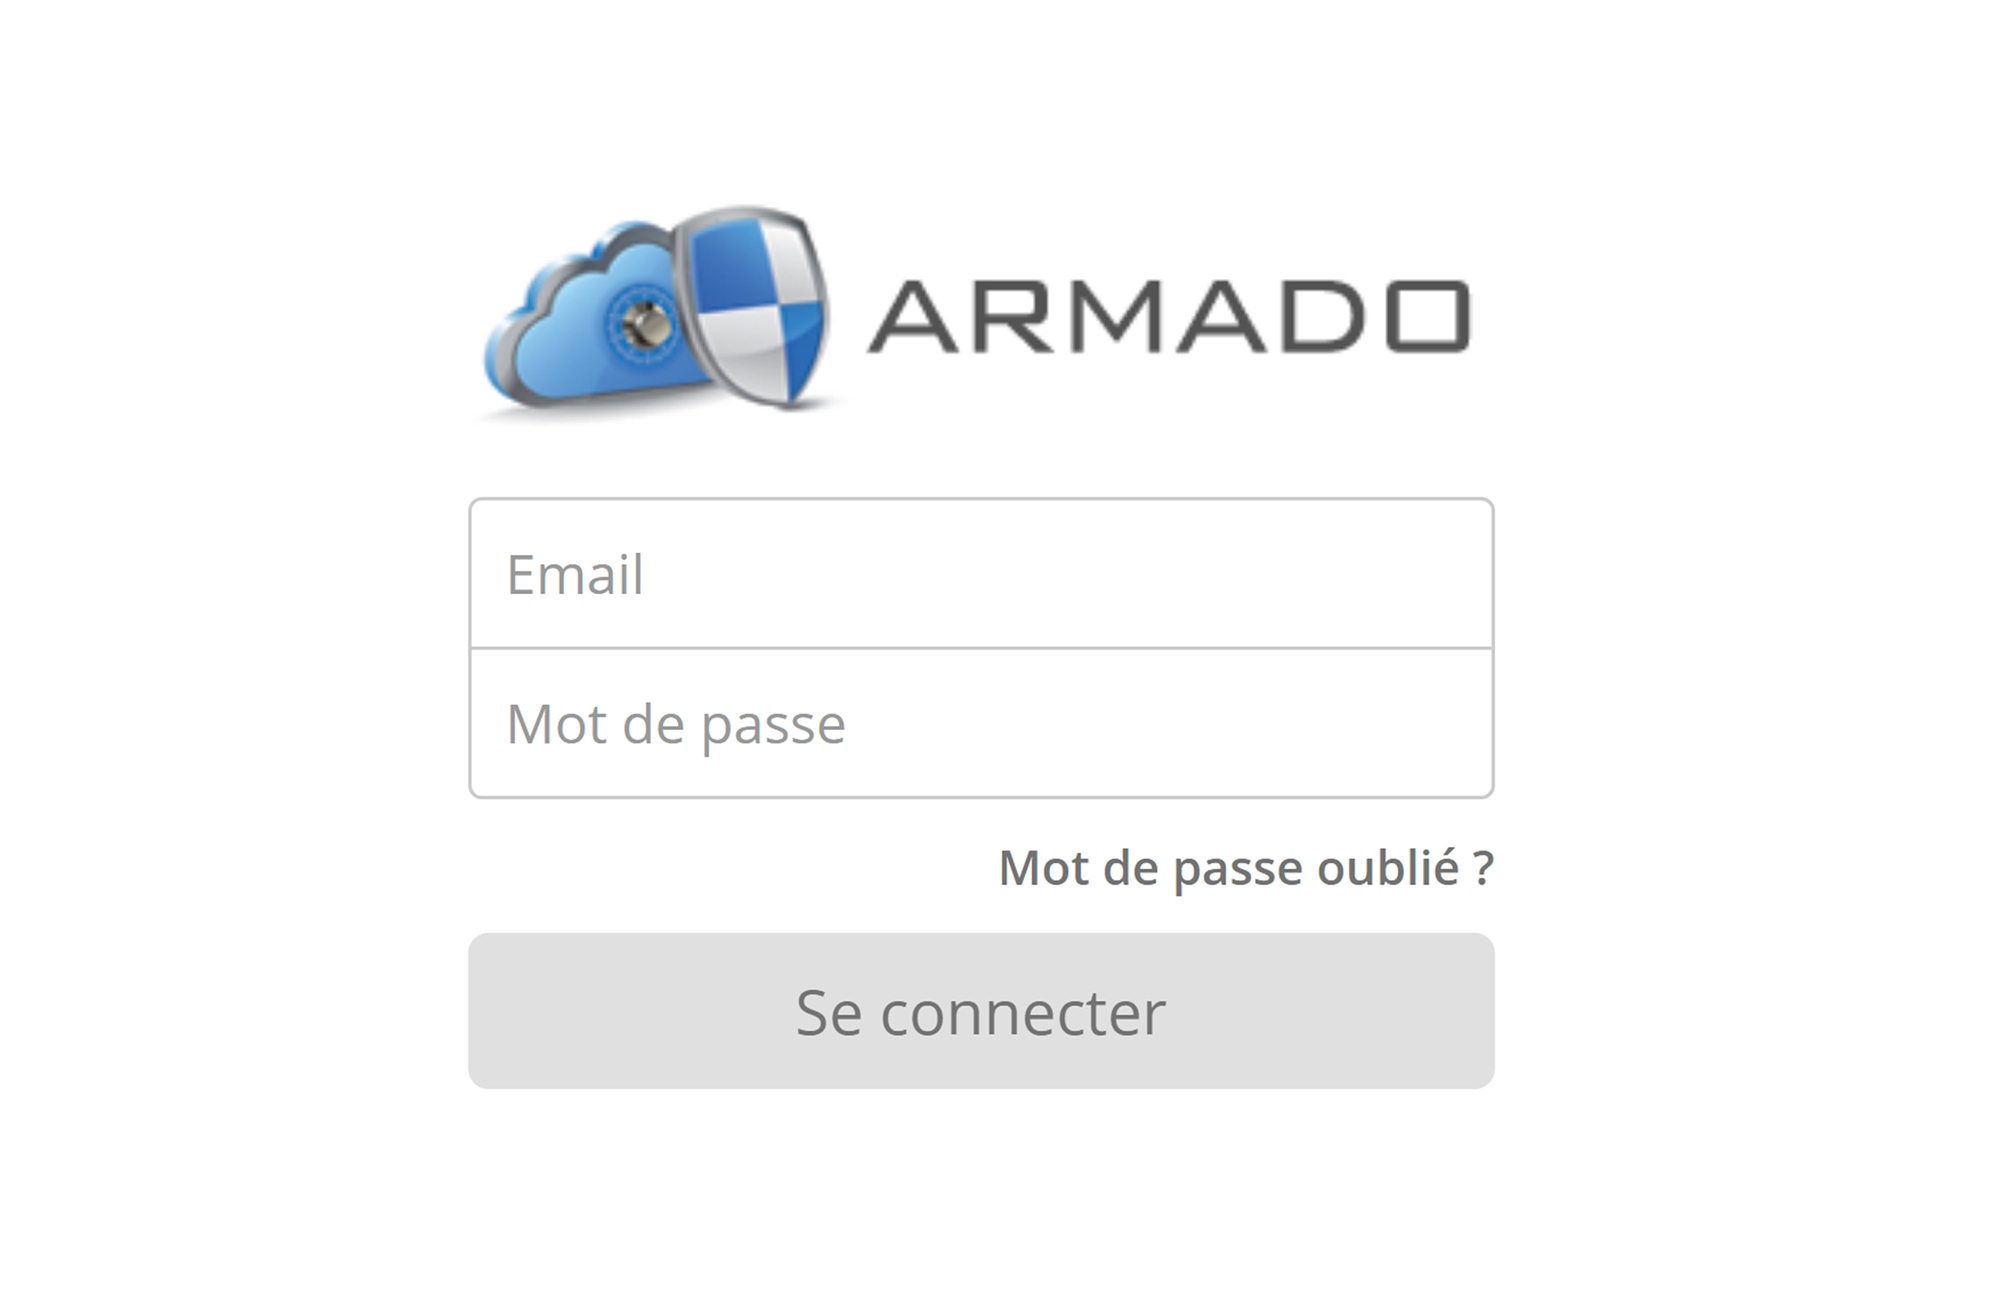 Armado avantages candidats - Aboutir Emploi & Transparence